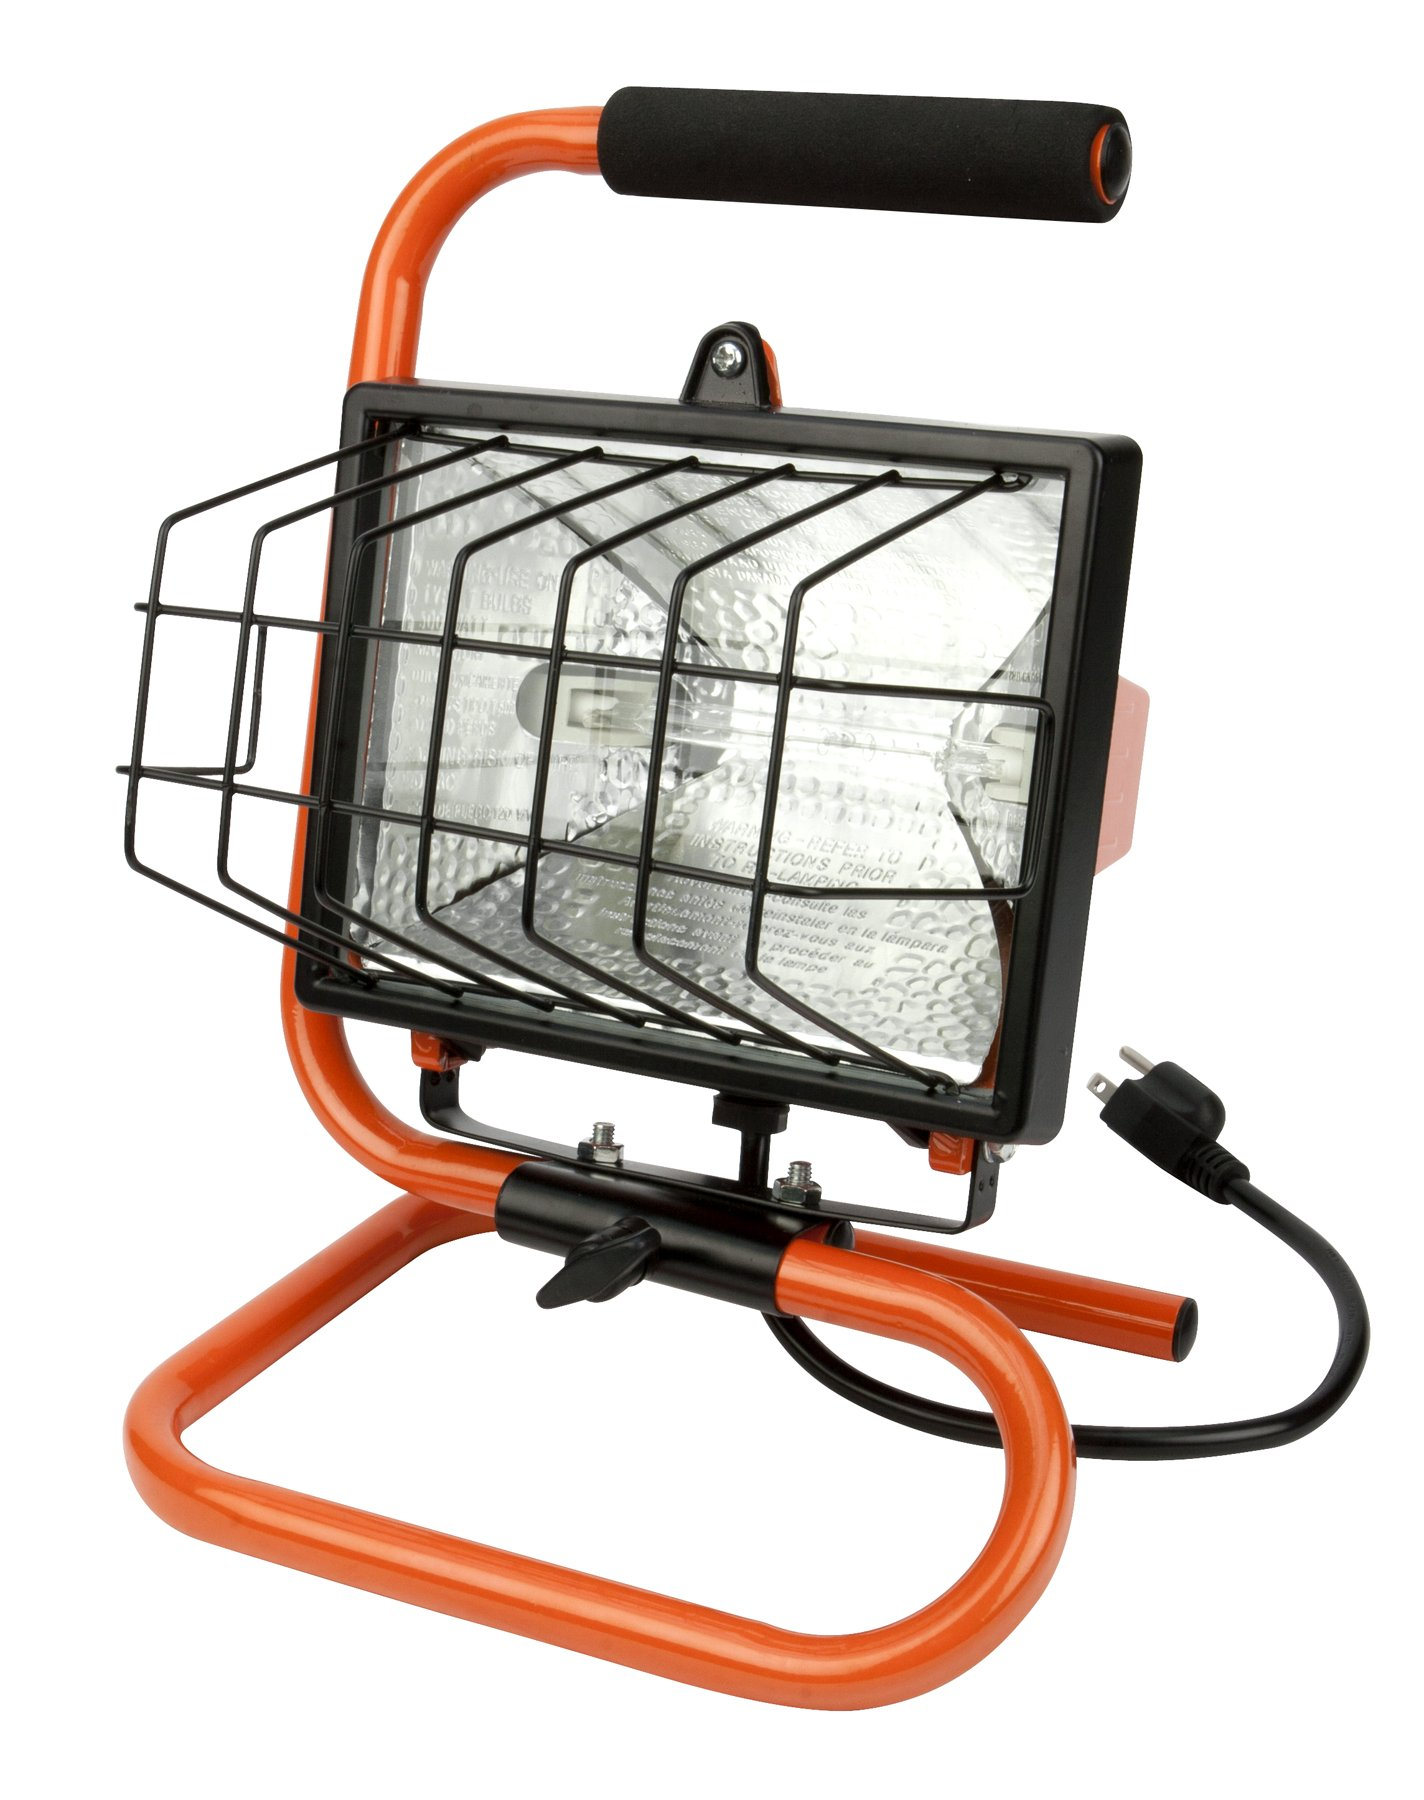 Performance Tool W2264  500-Watt Portable Handheld Halogen Worklight with Stand & Handle,  Adjustable Lighting Angle,Lens guard, Industrial Aluminum Housing.